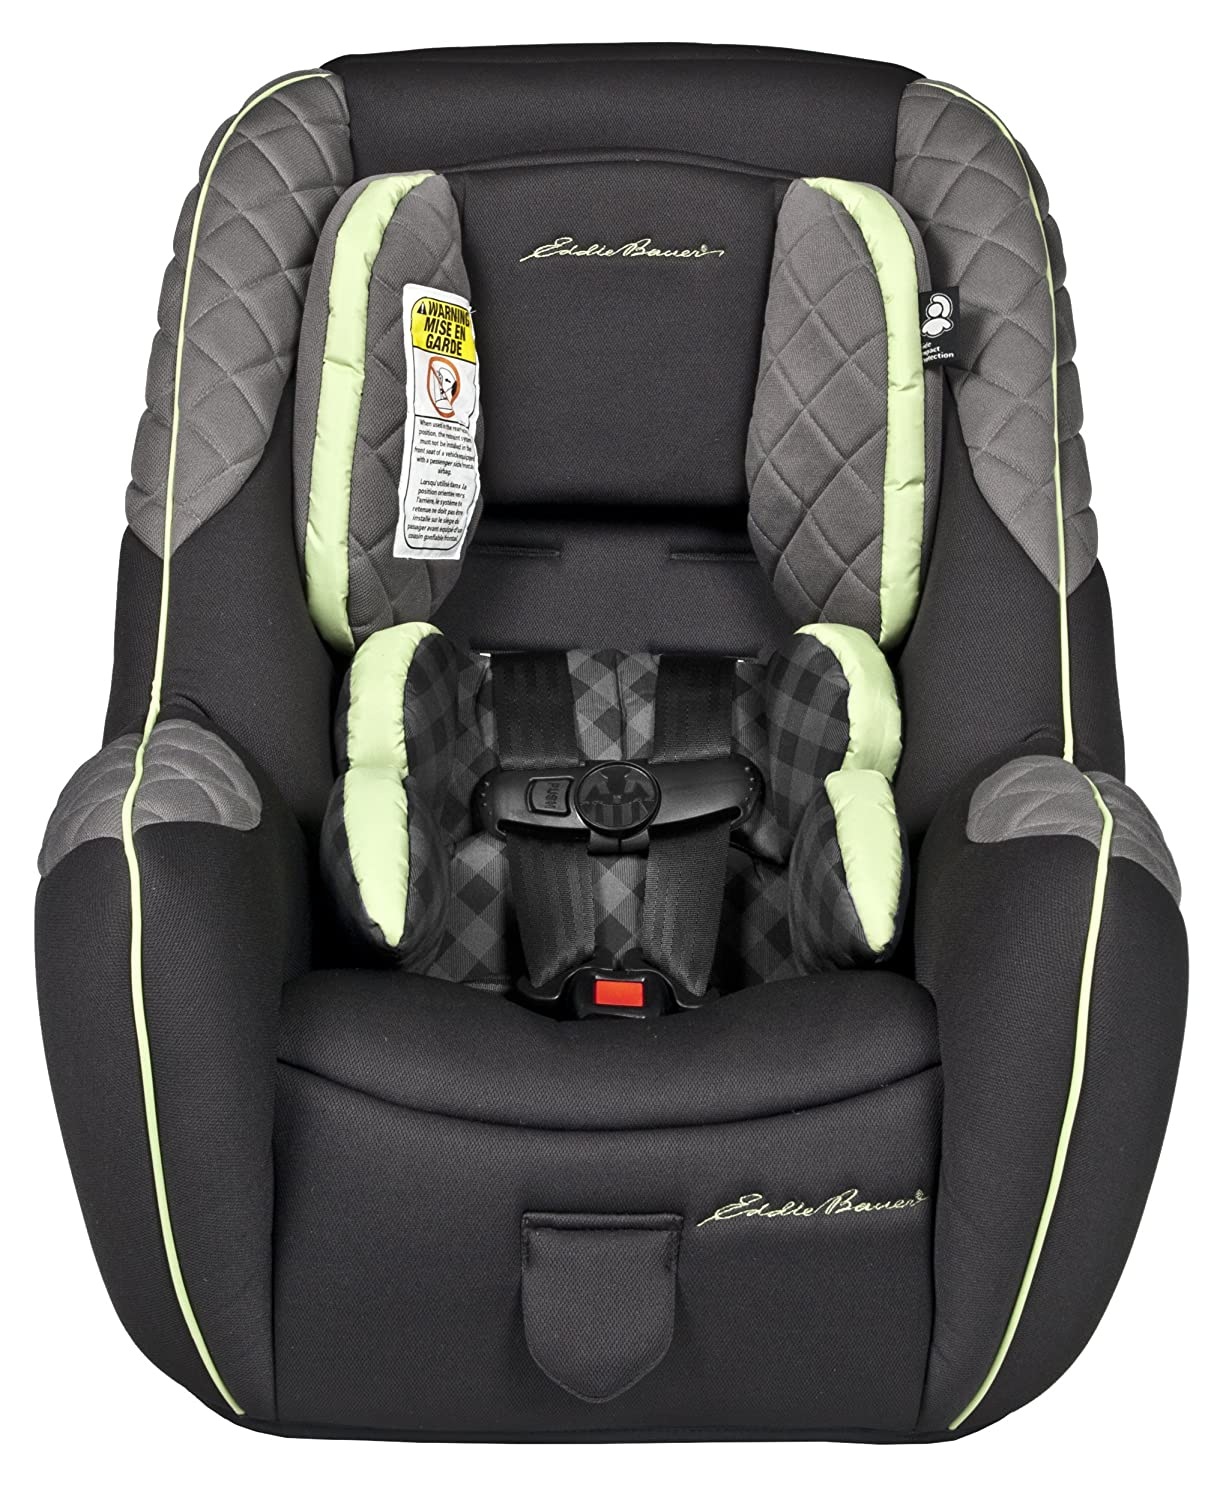 Eddie Bauer XRS 65 Convertible Car Seat-Broadview, Grey Black Dorel Juvenile Canada 22701CCEM